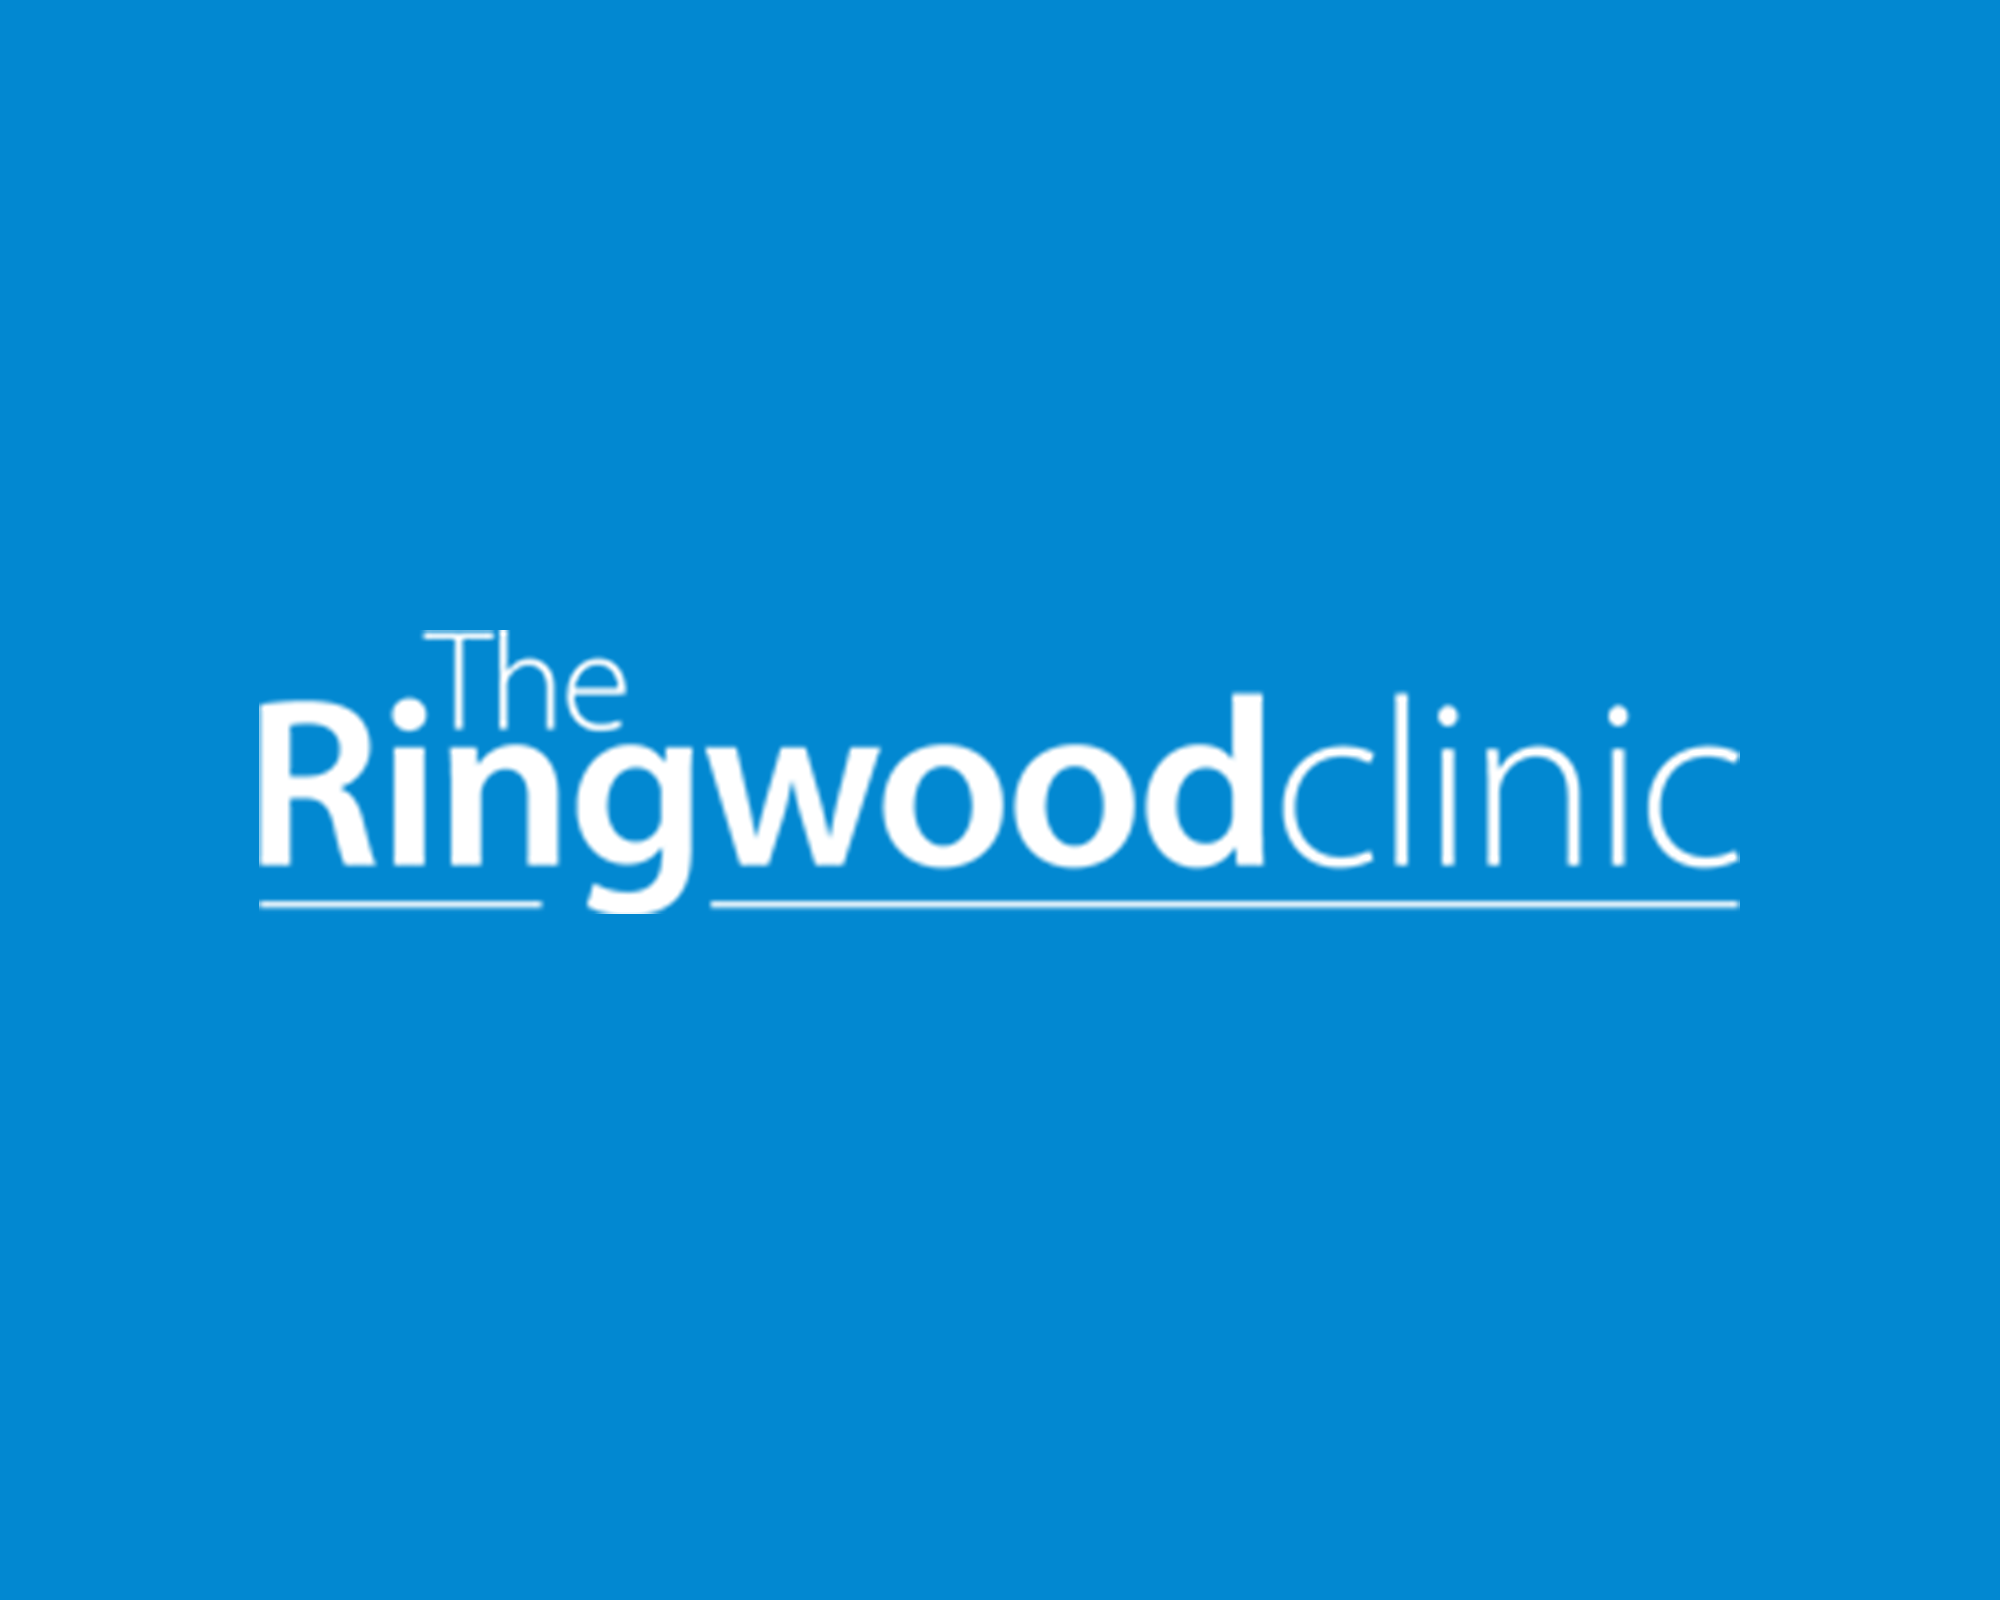 the ringwood clinic Logo